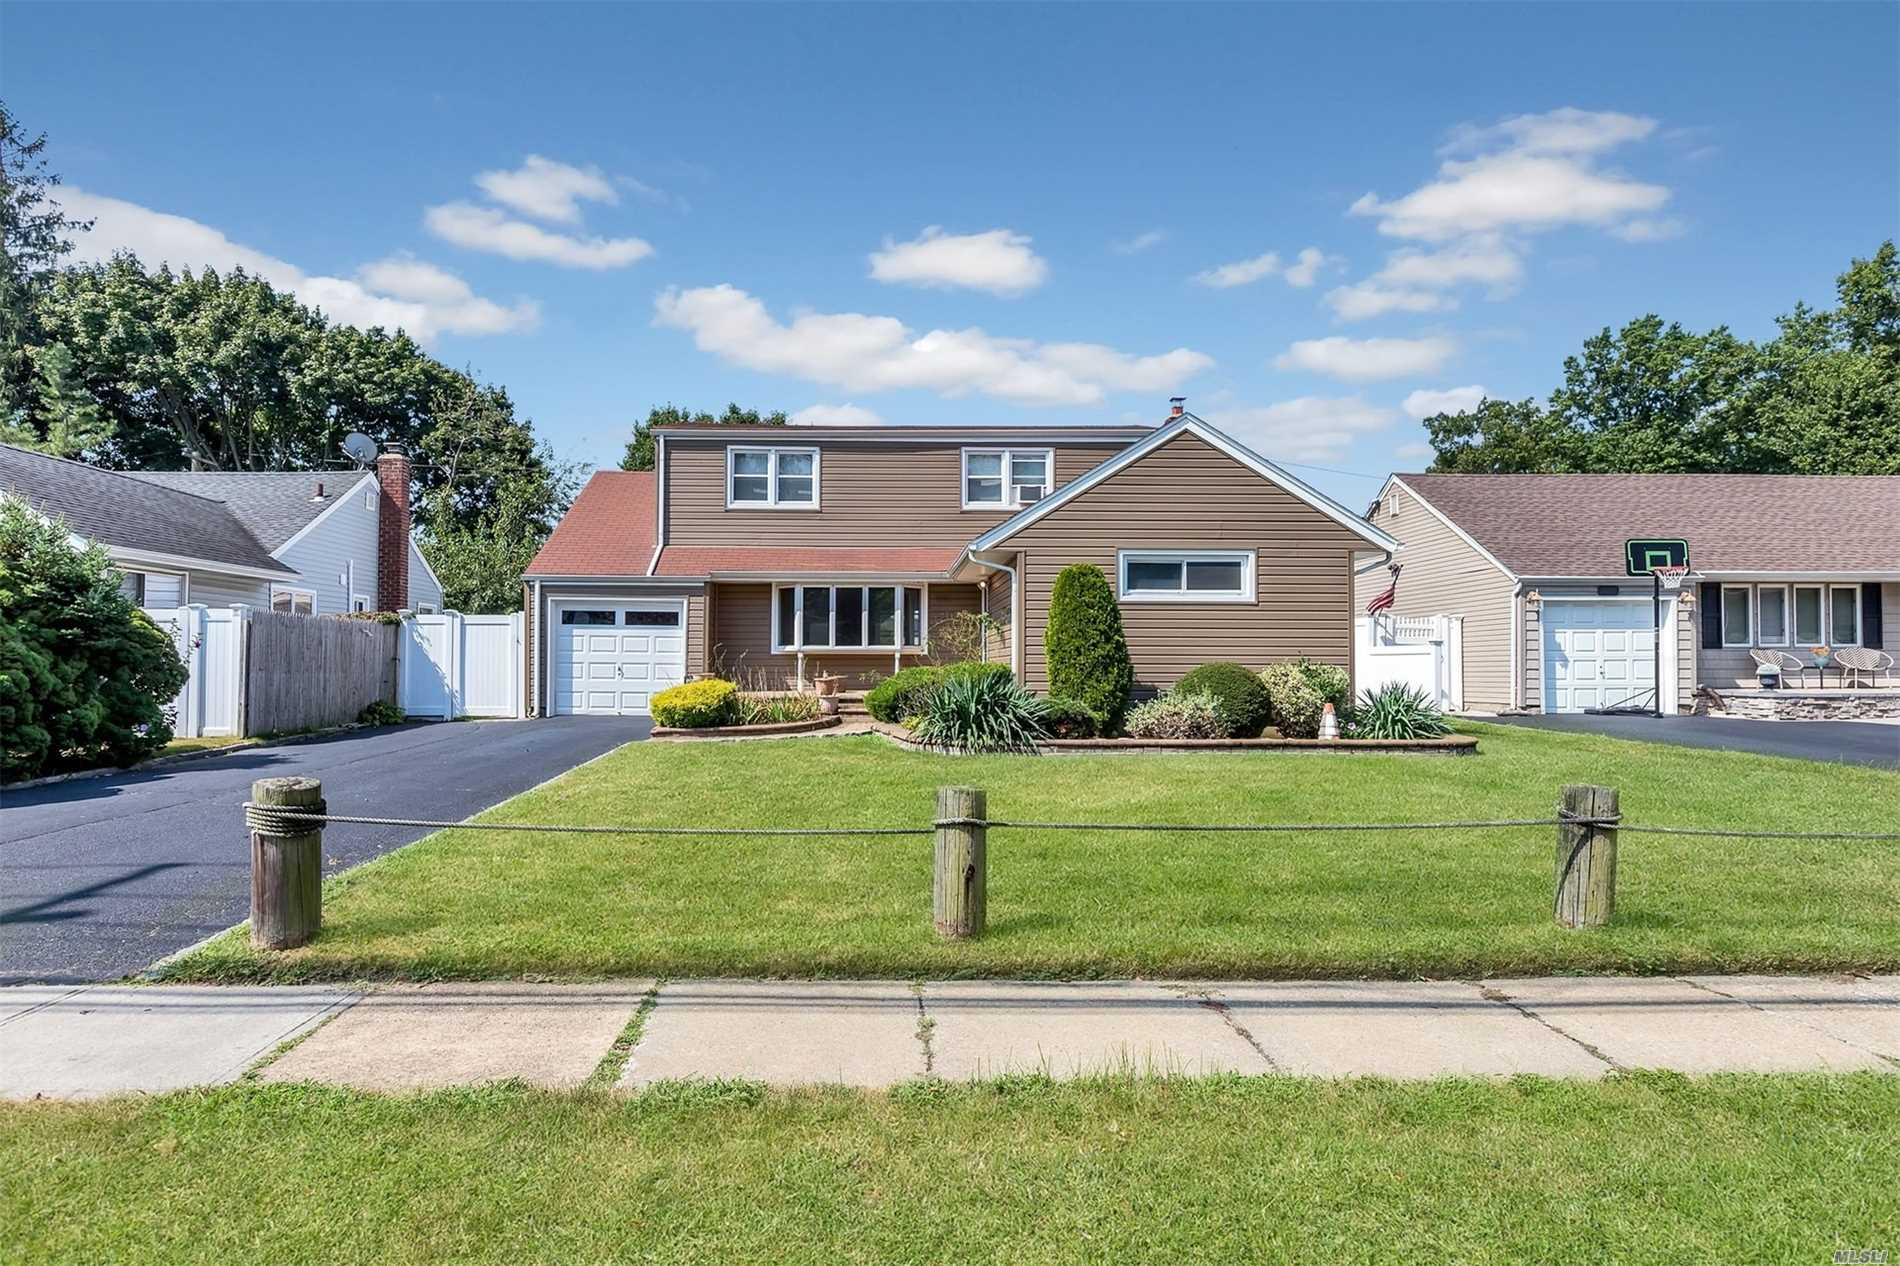 Photo of home for sale at 1010 Bellmore Rd, North Bellmore NY